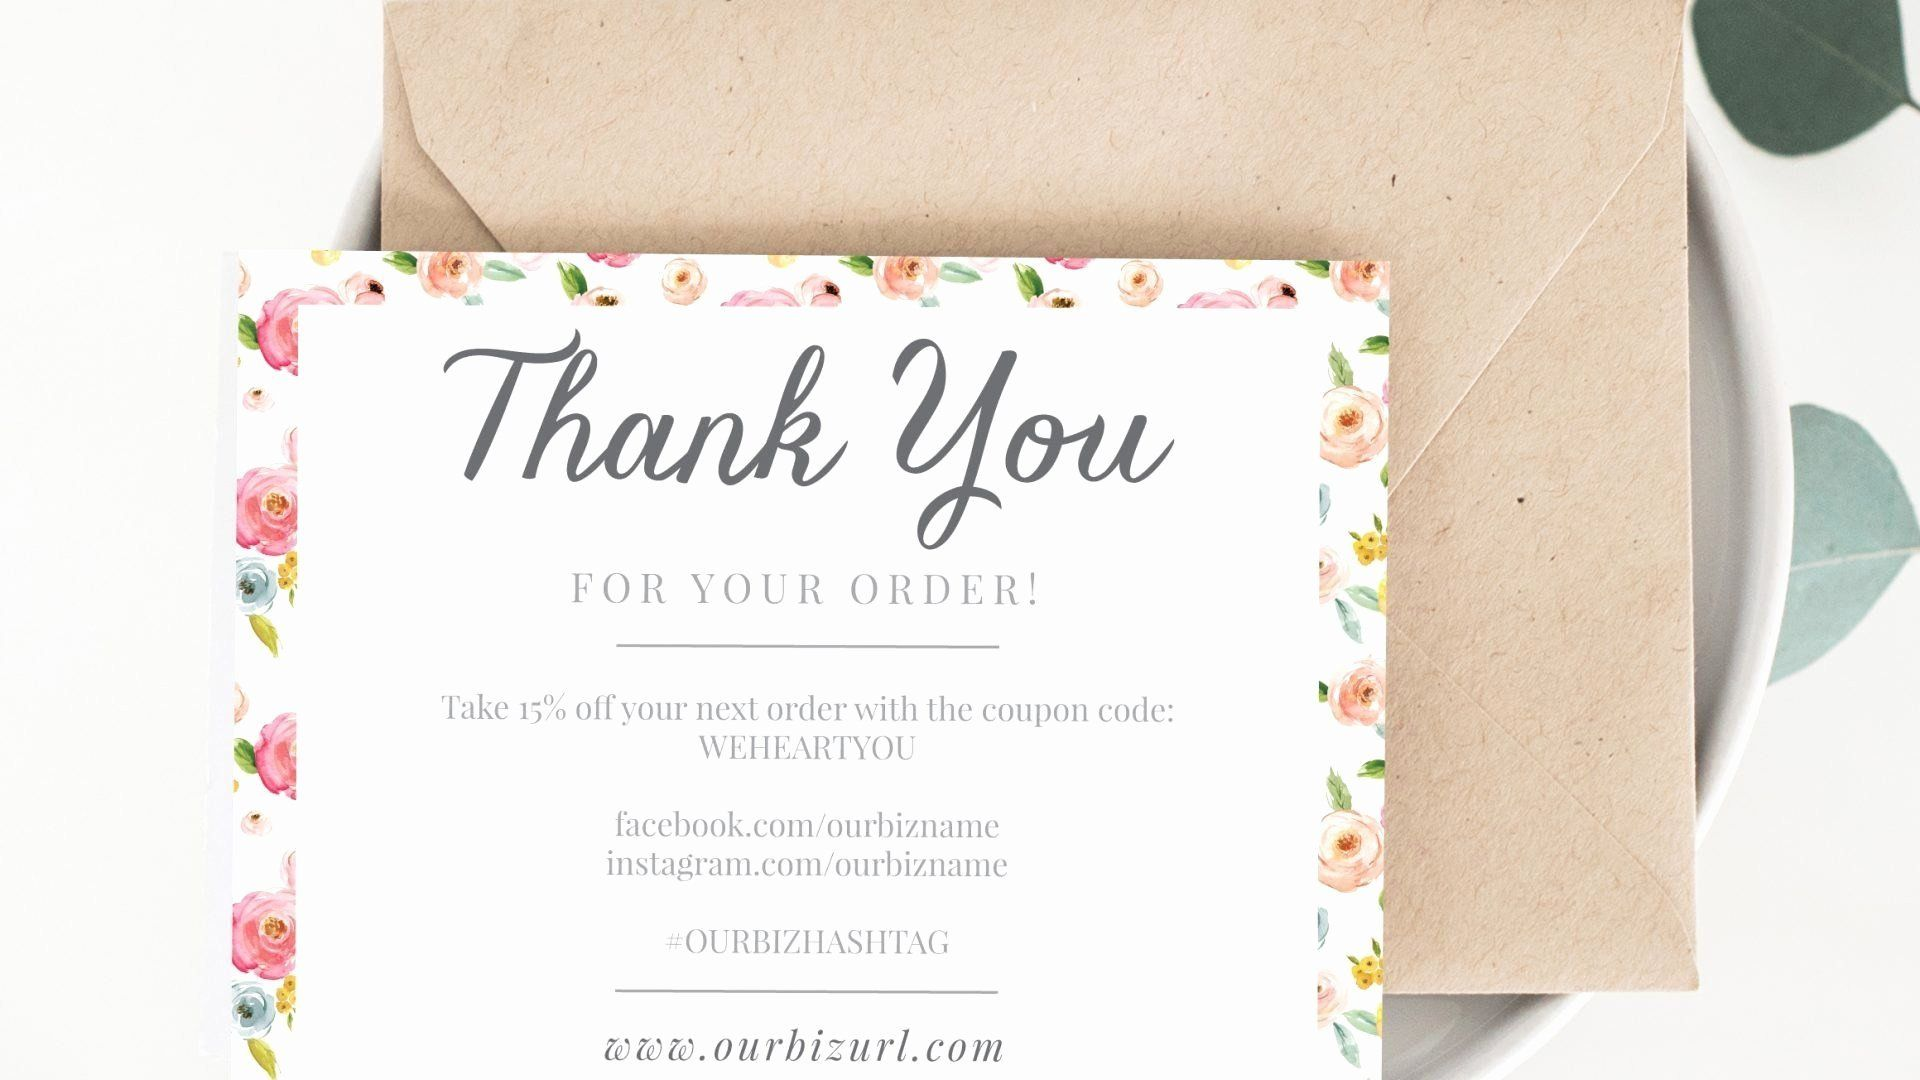 Elegant Thank You Cards Awesome Thank You Cards Messages For Business Sample Professional Template Thank You Card Examples Thank You Cards Cards